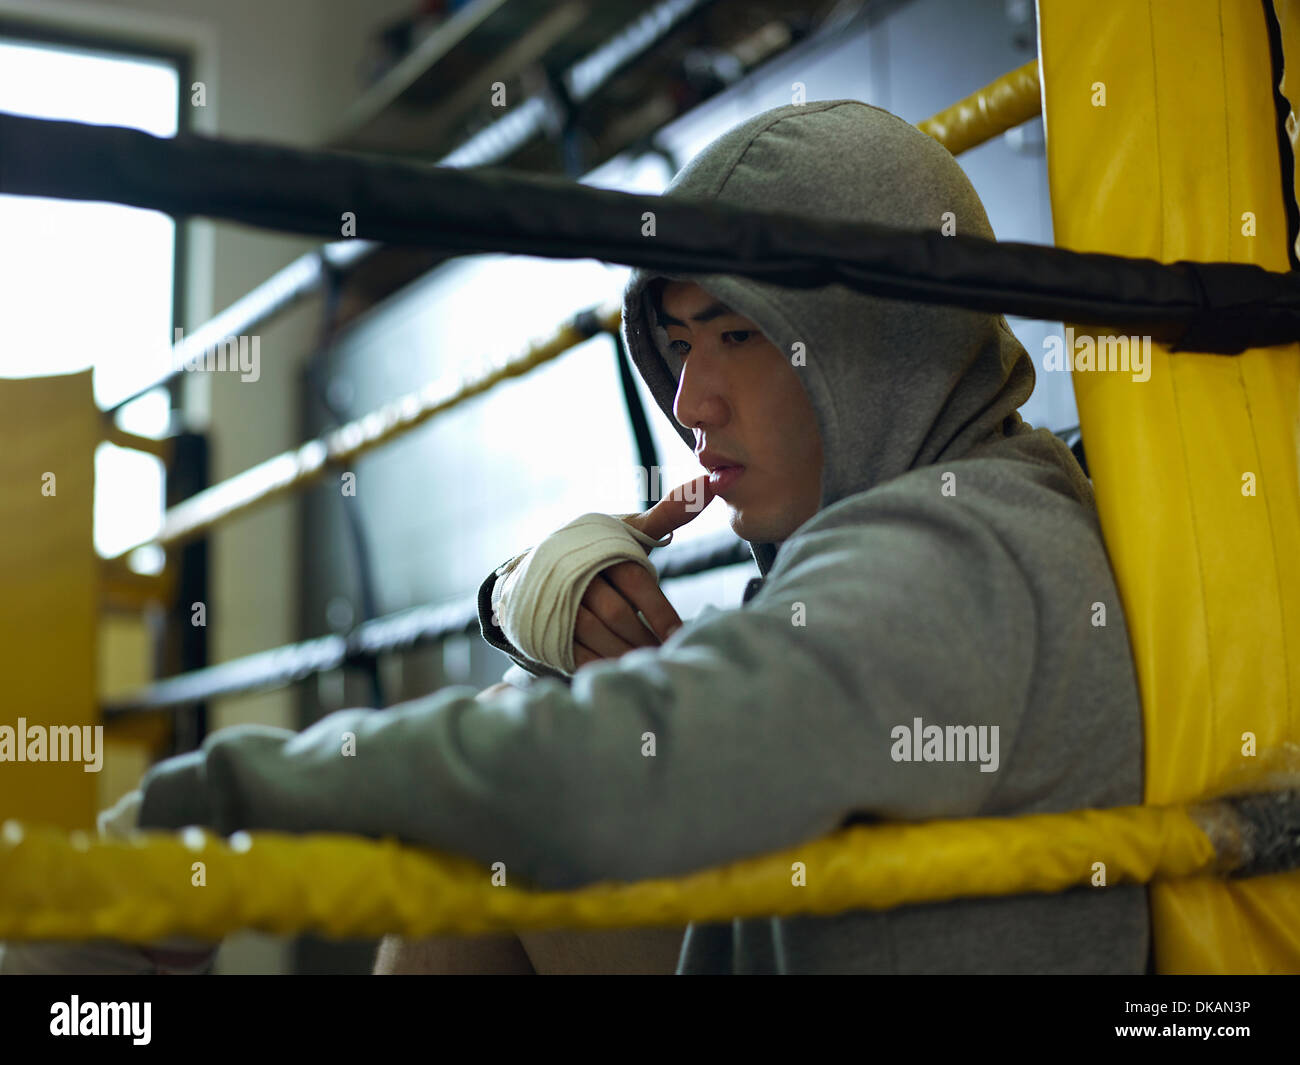 Boxer sitting in corner of ring wearing hooded top - Stock Image